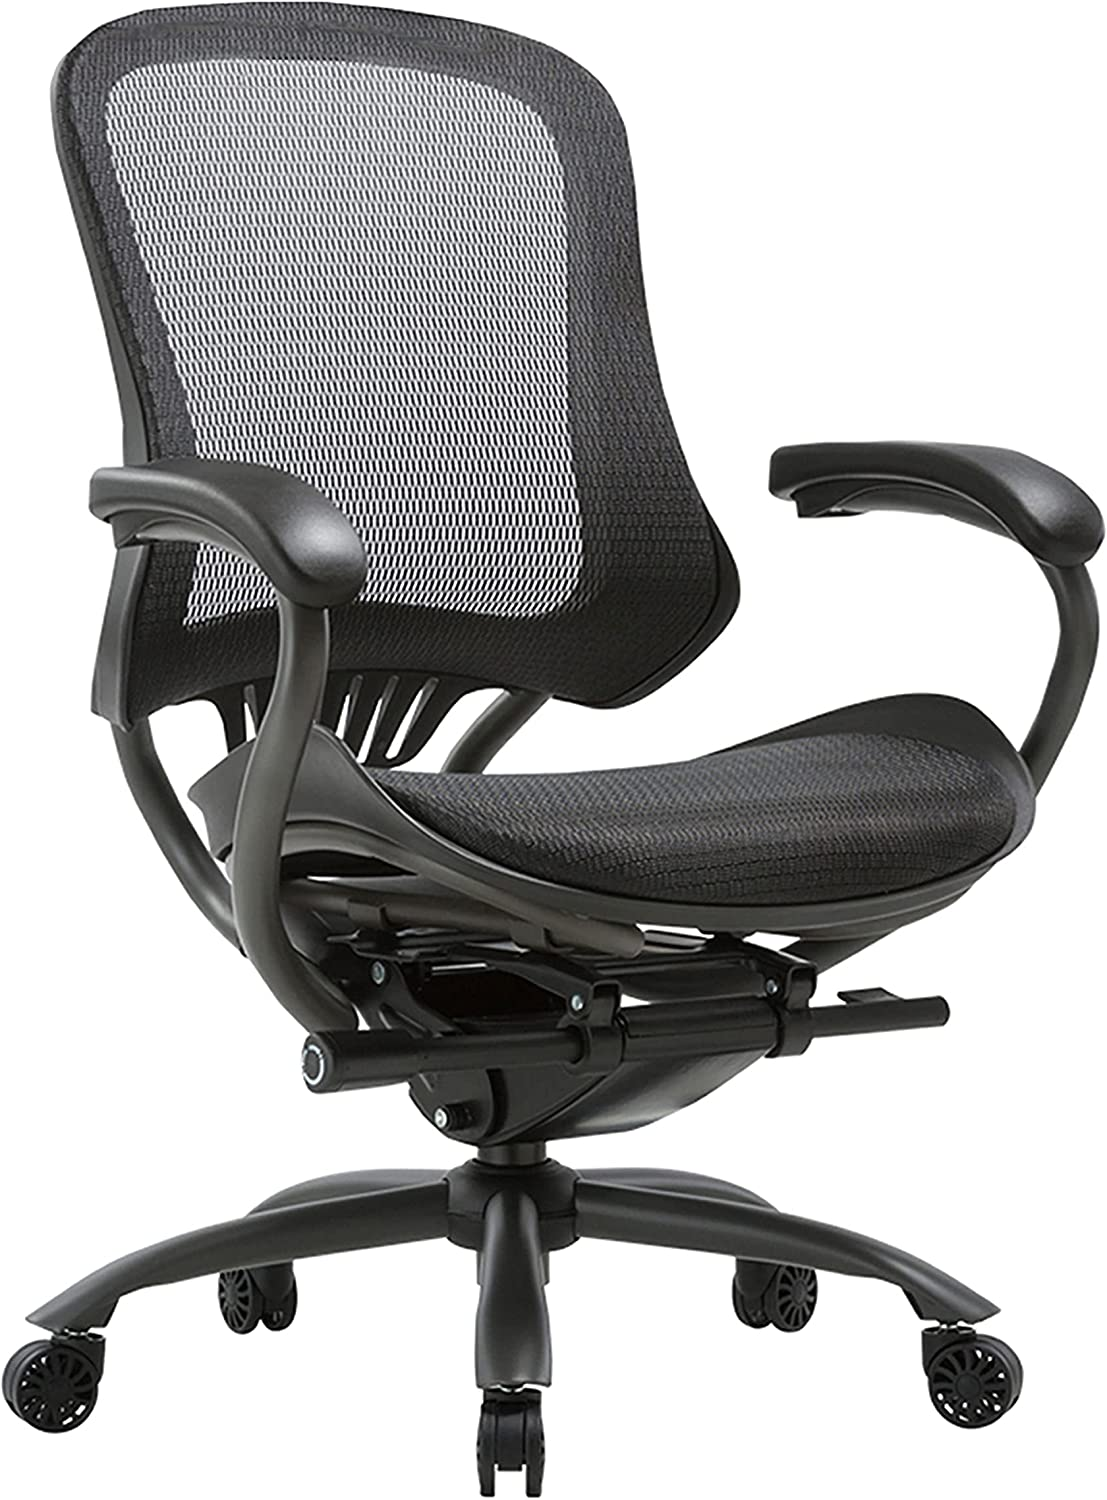 Furniture of America Ames Ergonomic Padded Leather Computer Chair, Black